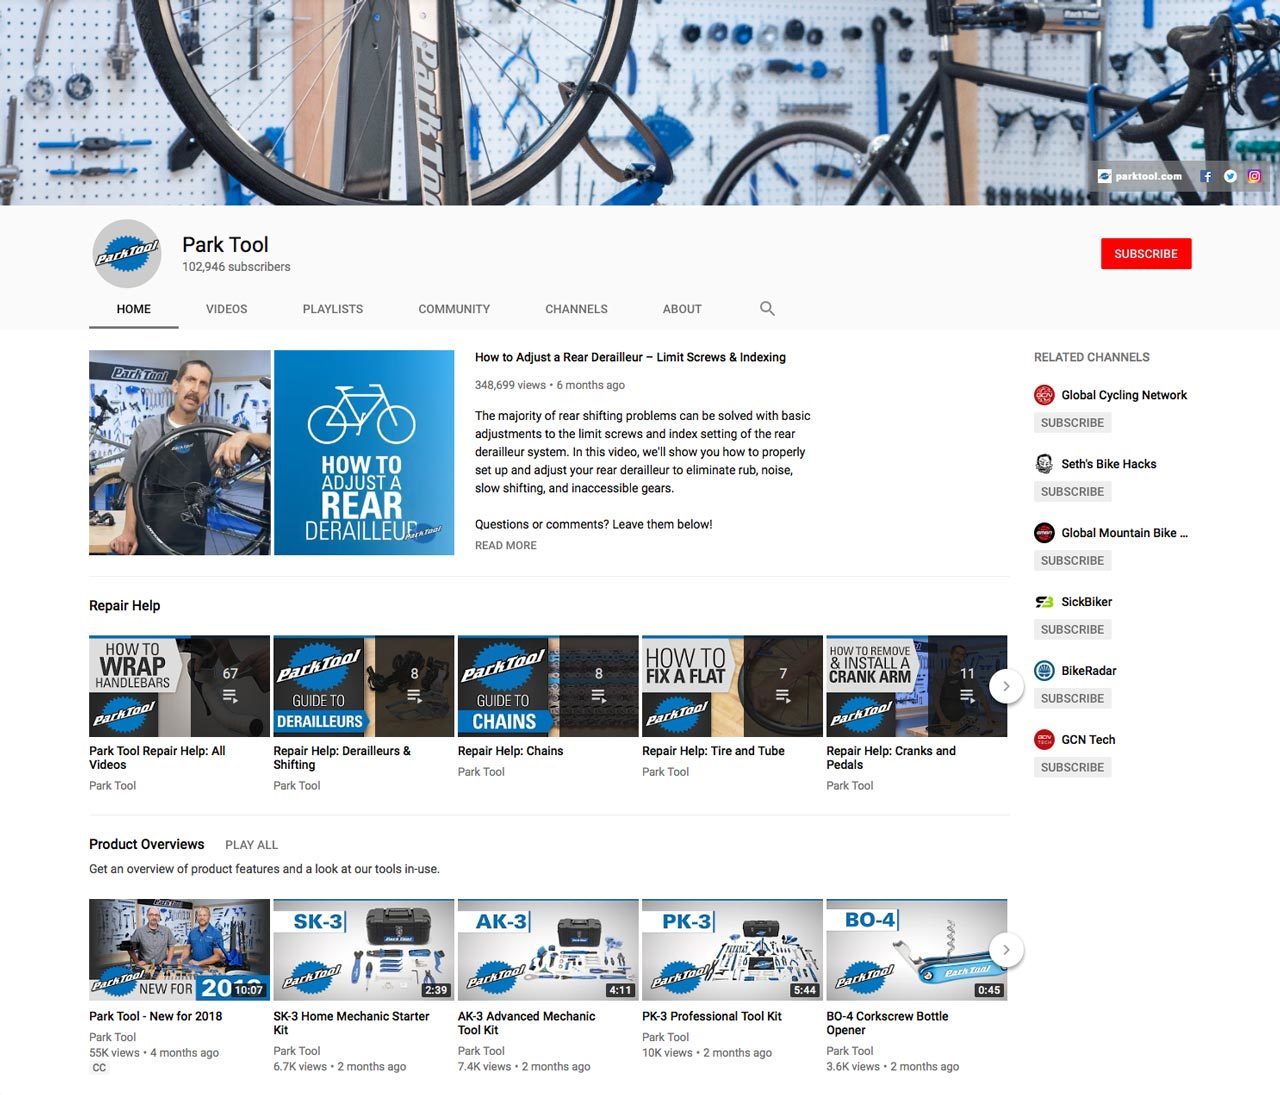 Screenshot of the Park Tool Youtube page